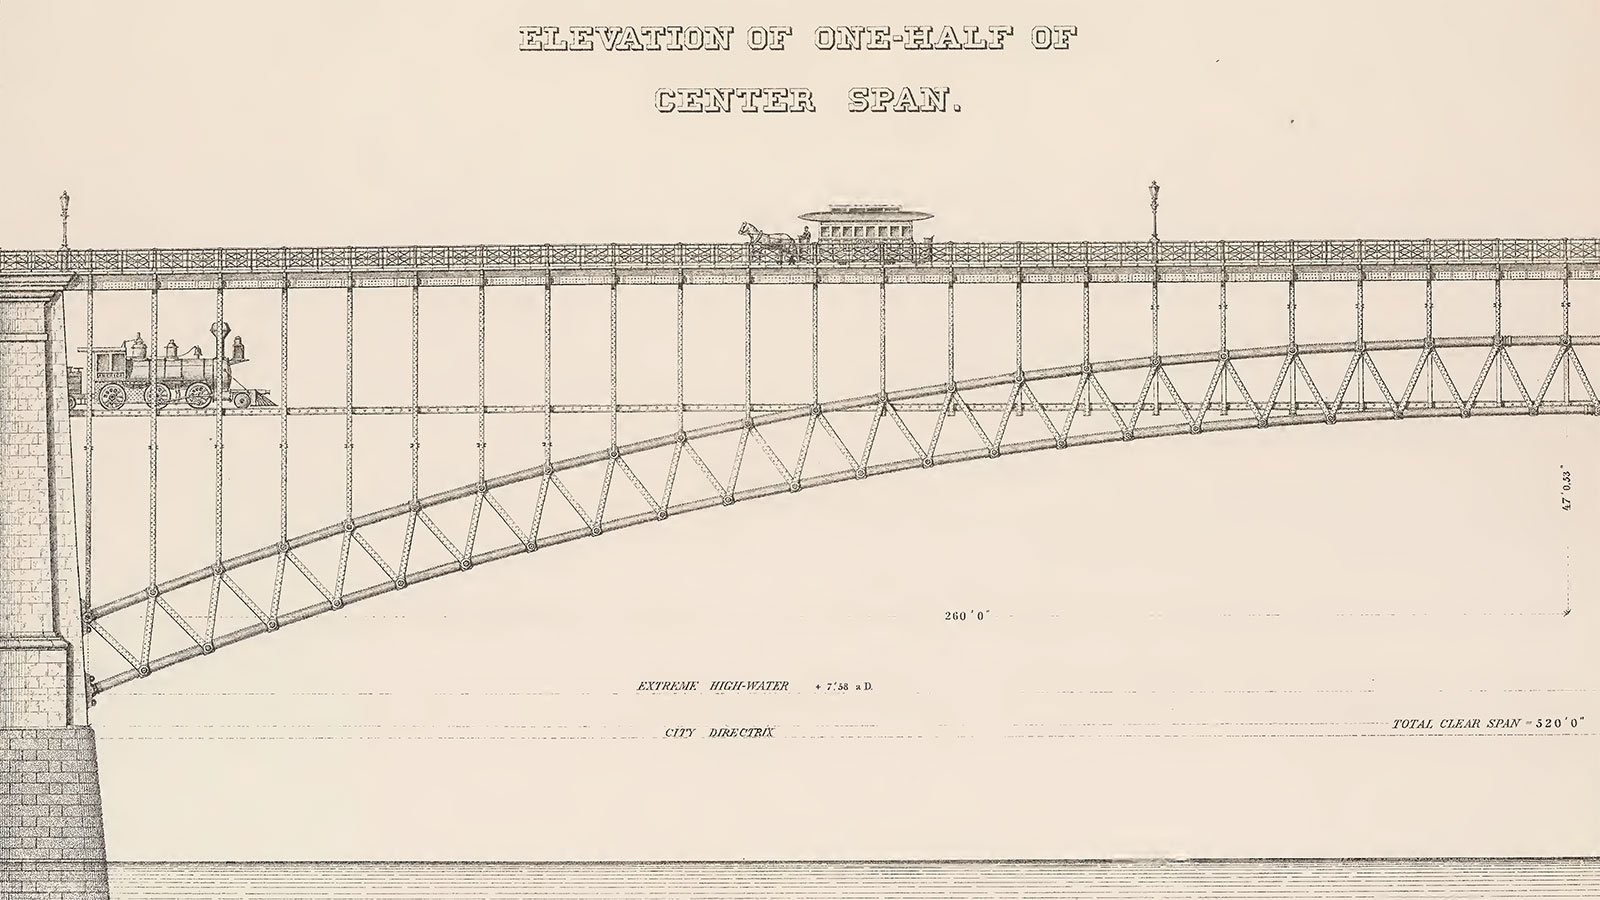 Elevation of One-Half of Center Span